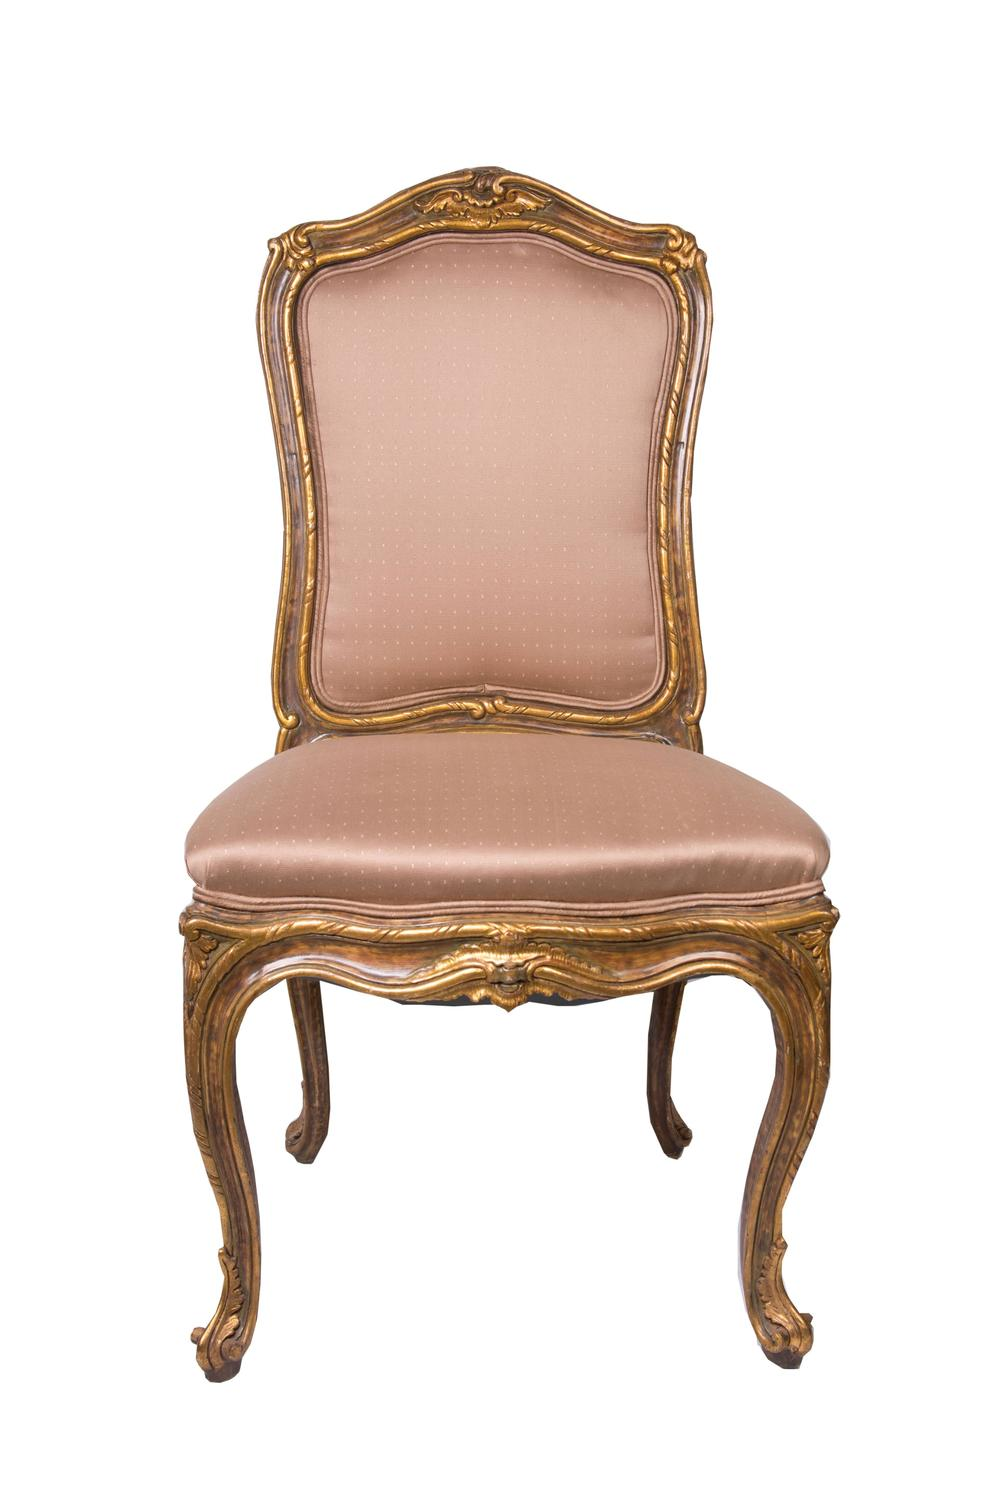 Set Of Six 19th Century French Carved And Gilt Upholstered Side Chairs For Sale At 1stdibs